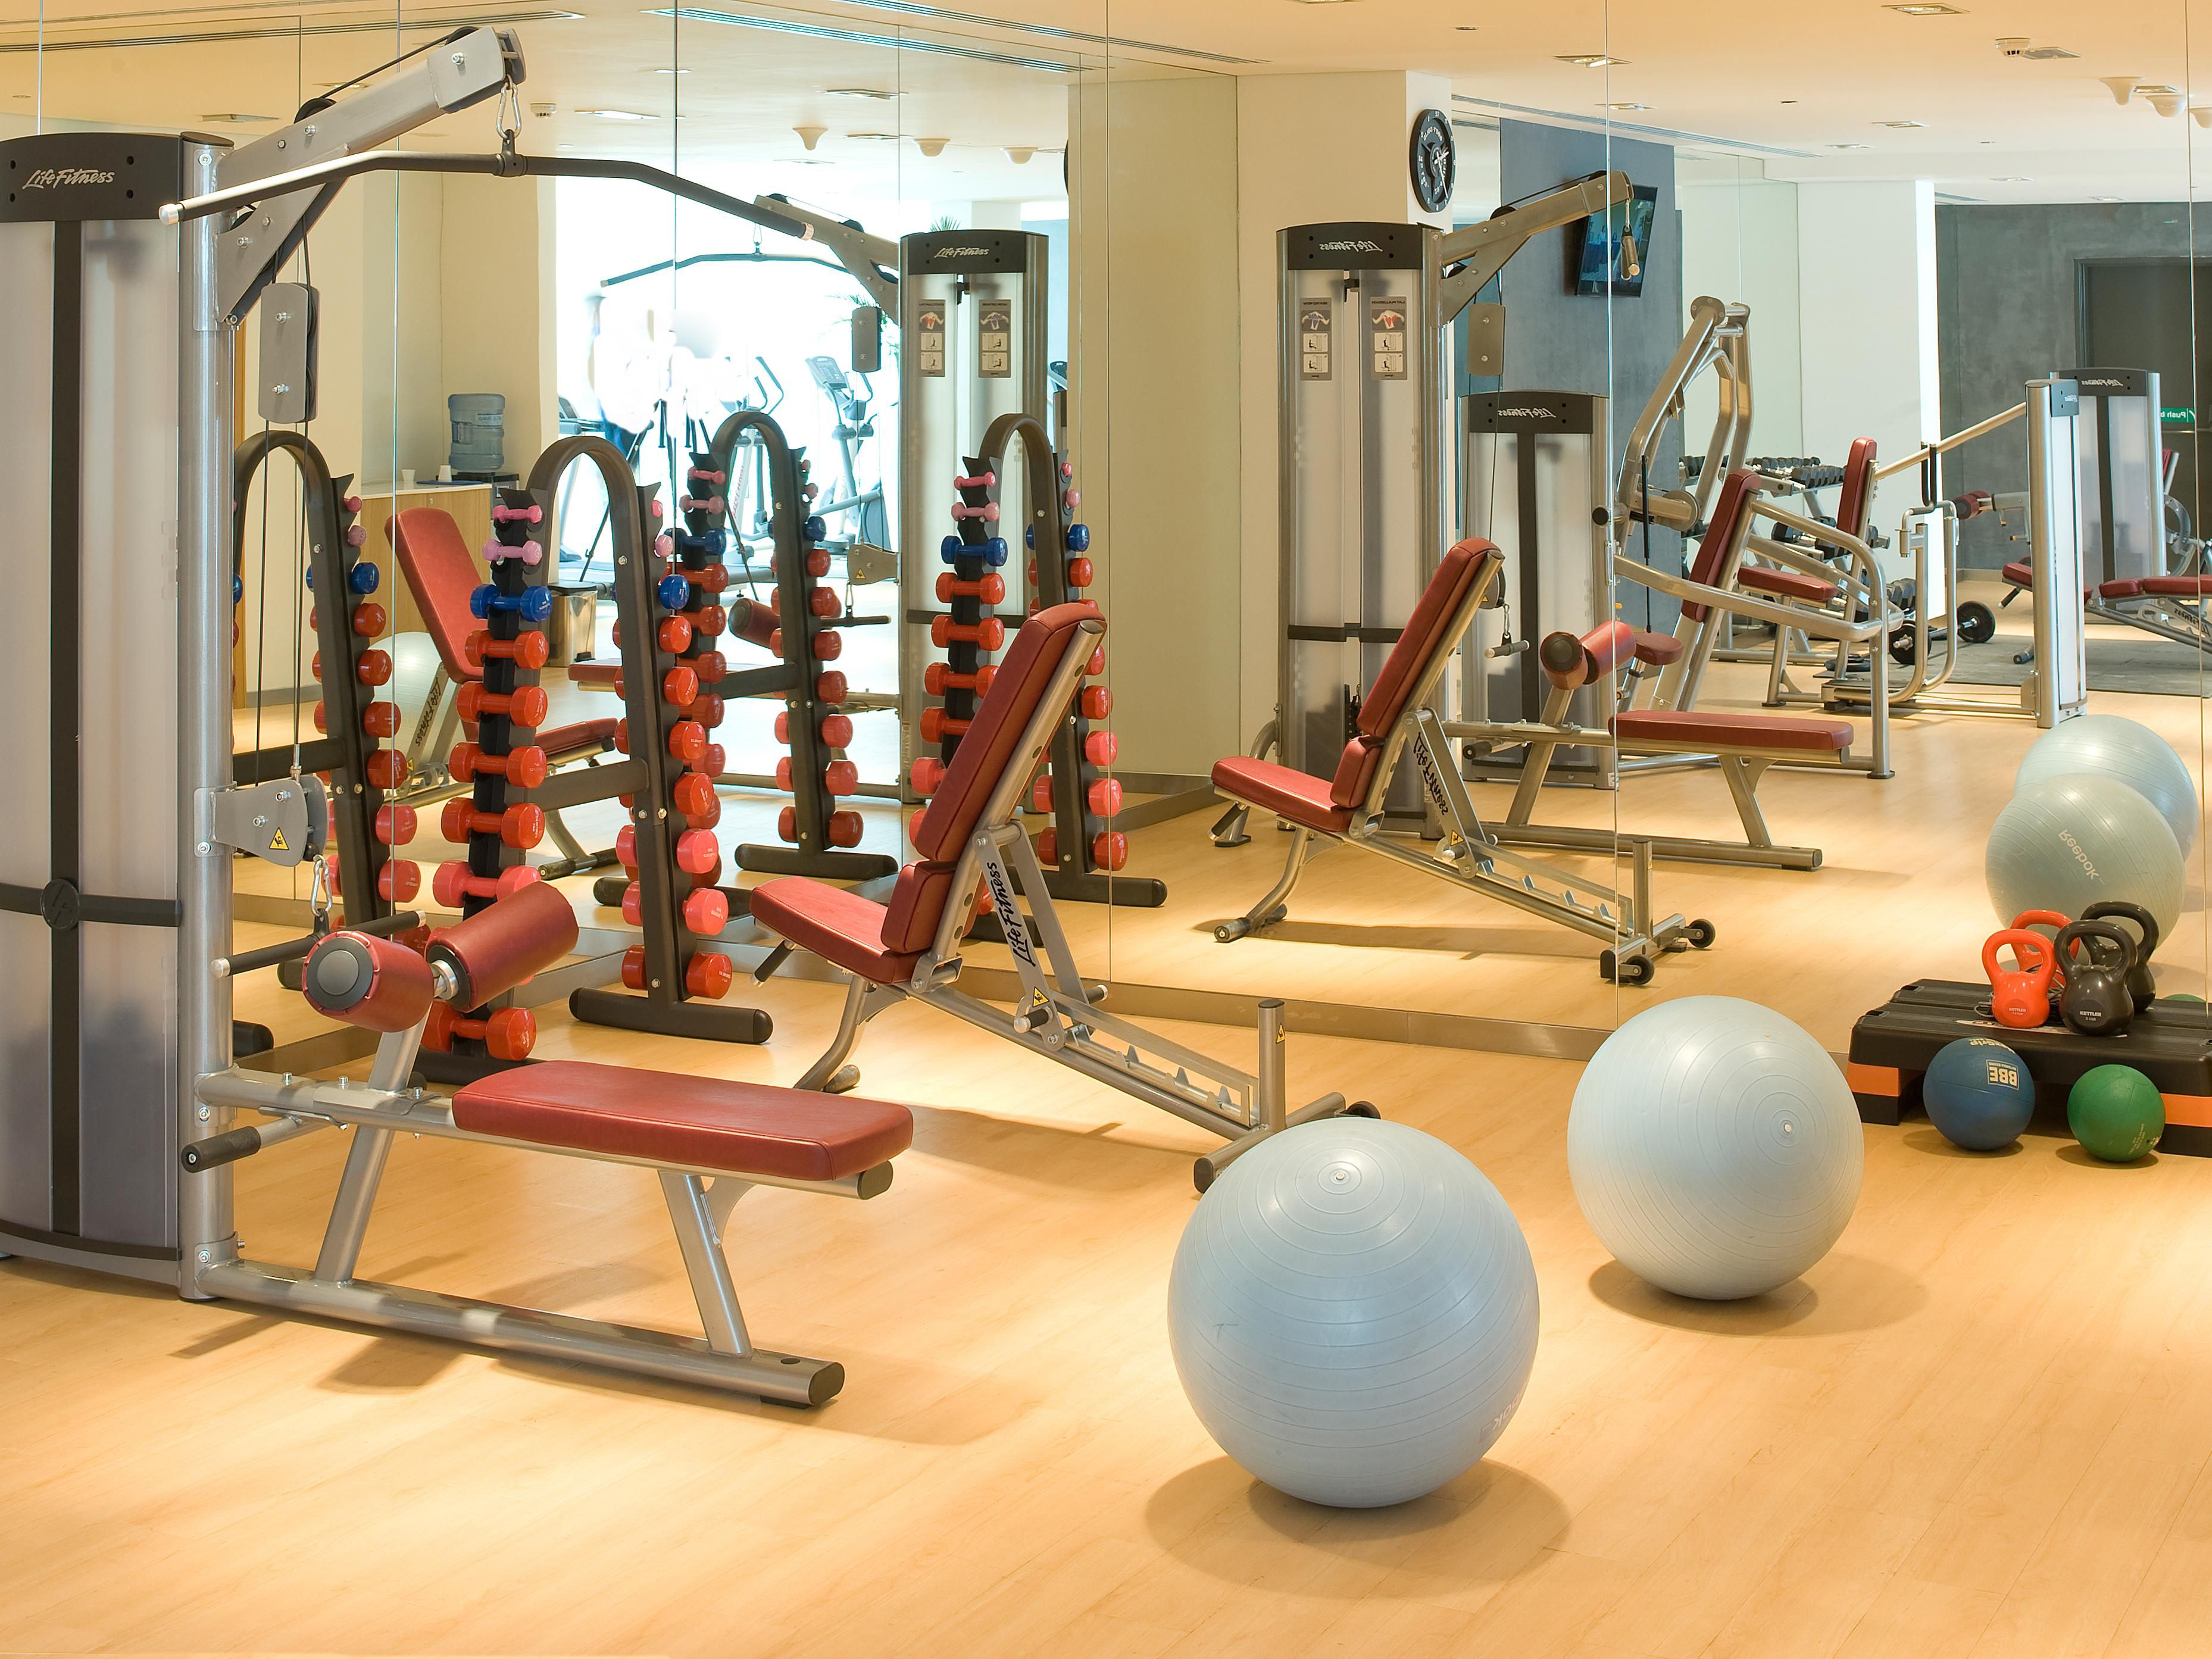 Stay Fit - With state of the art weight training facilities